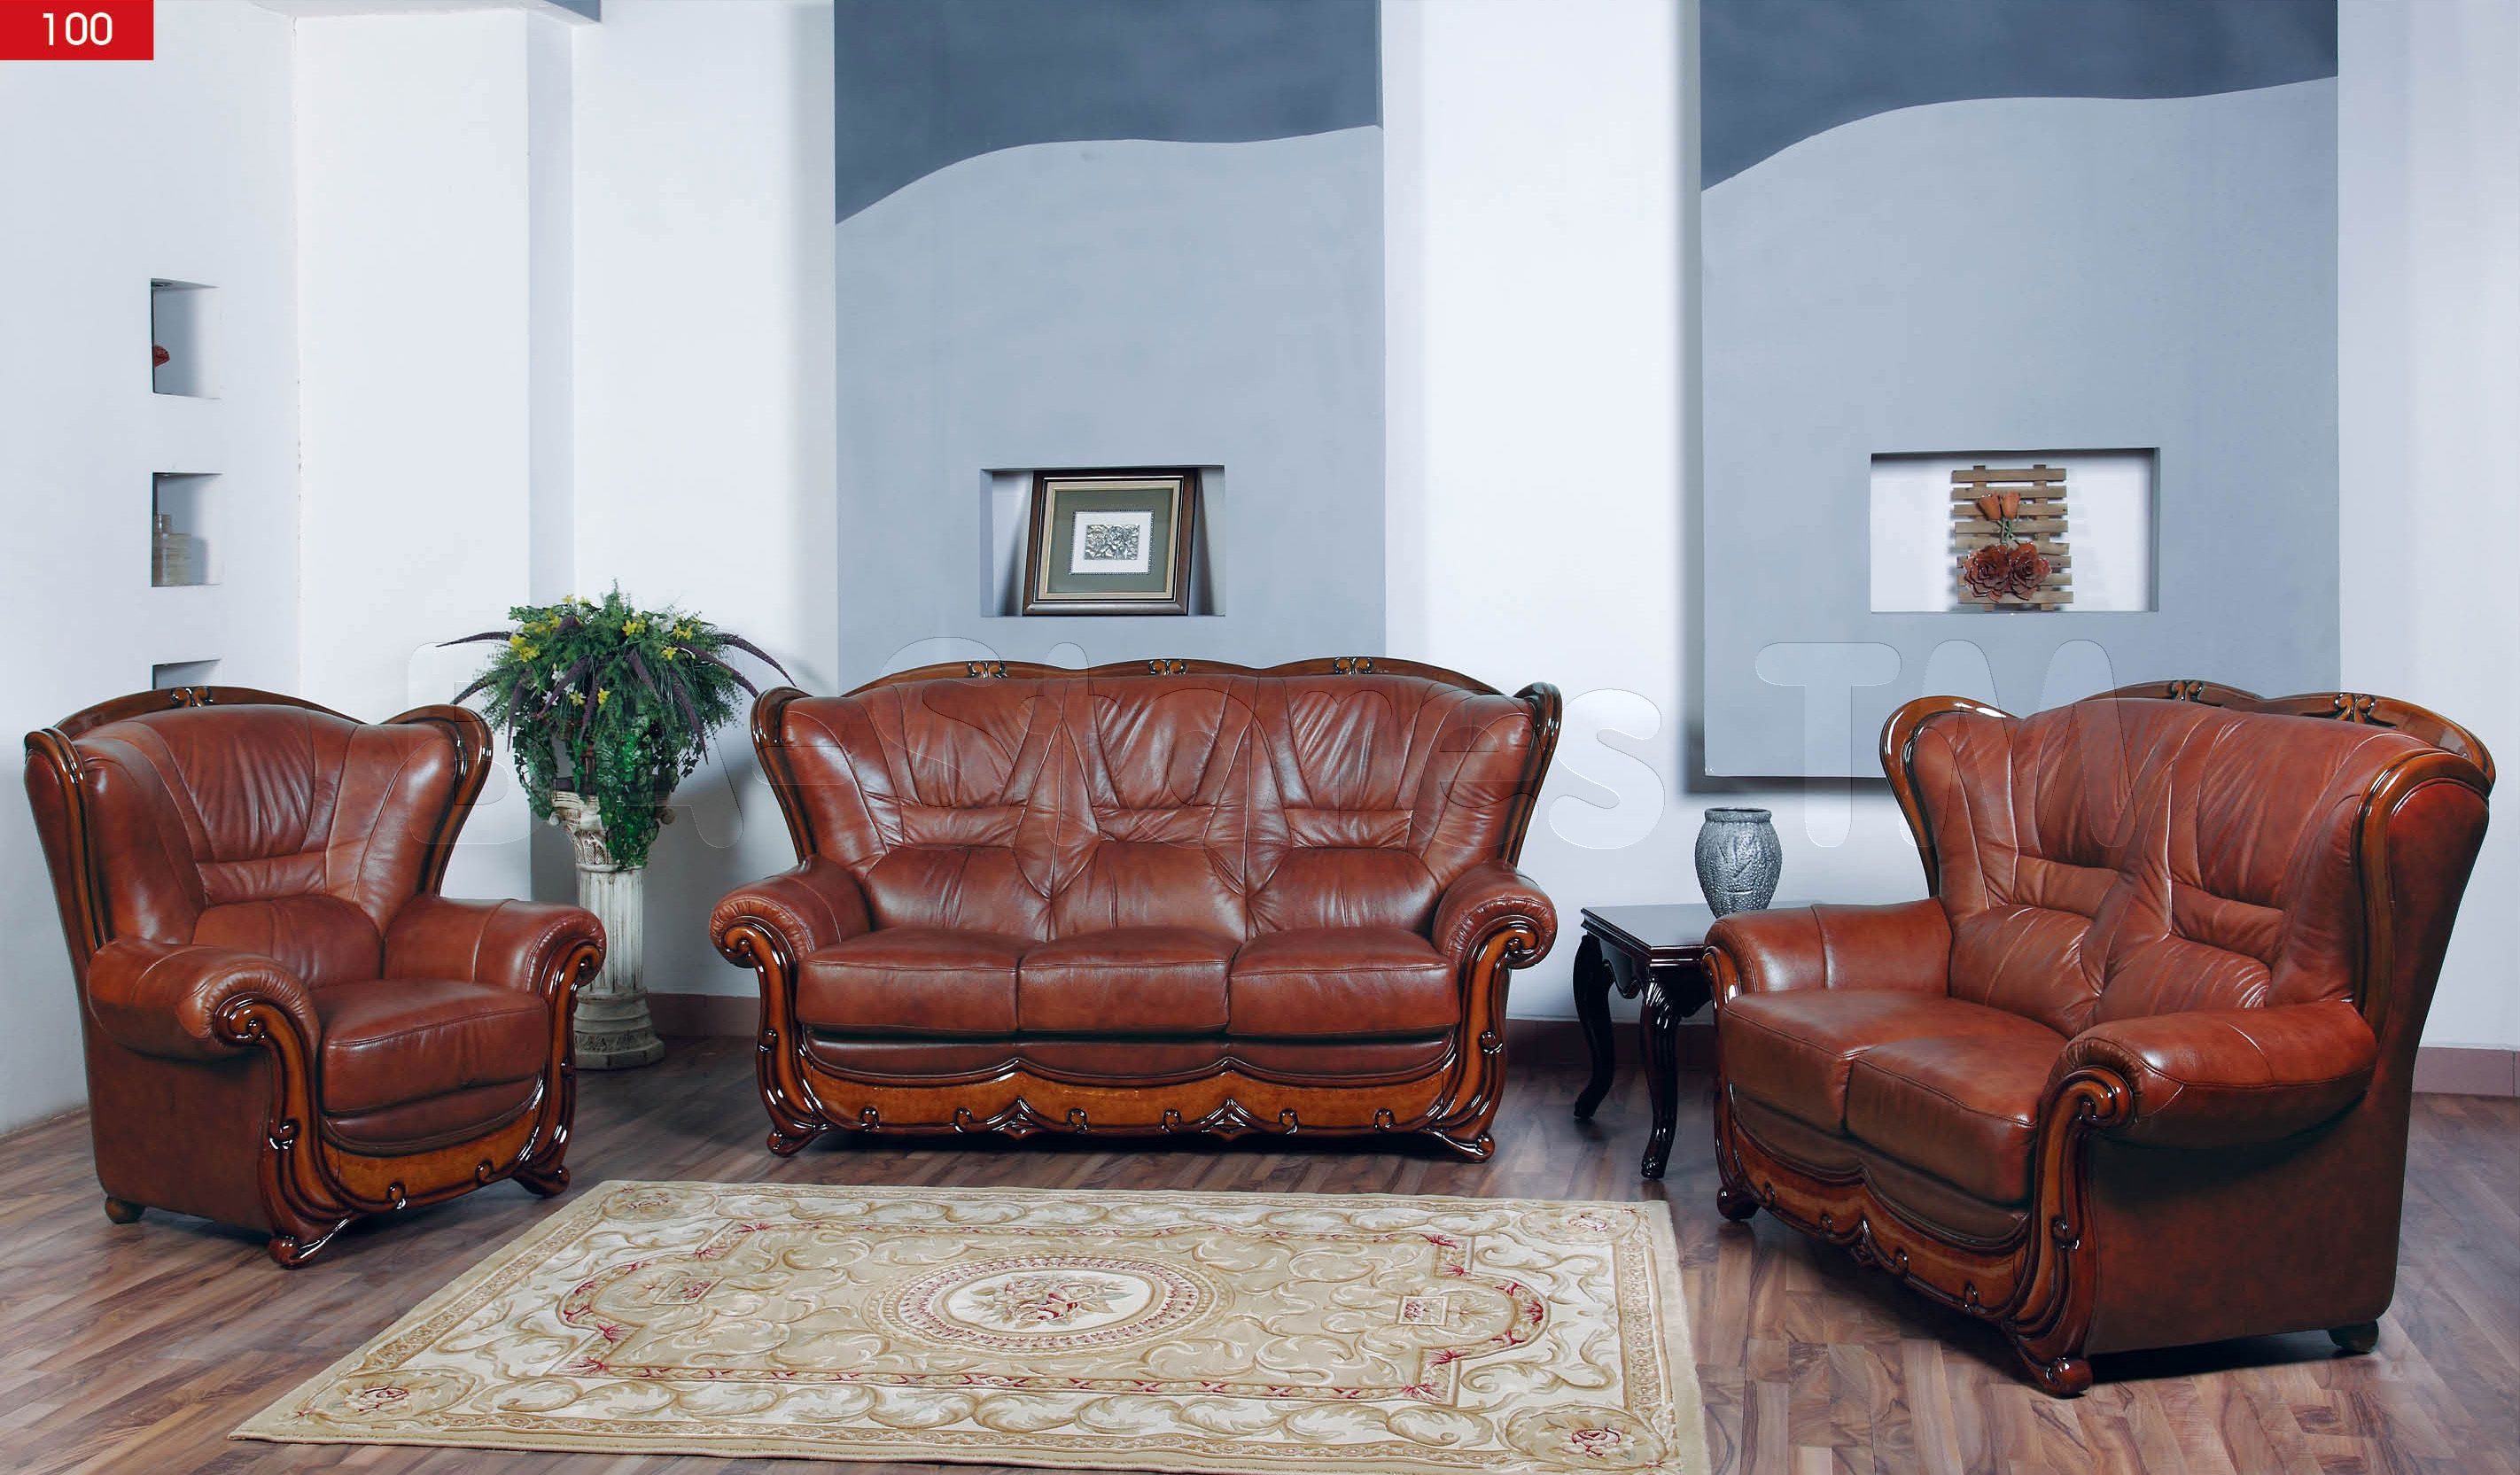 Largest Sofa Sets Collection With An Inviting Eal And Comfort 100 Loveseat Chair Are Accented Wood Framing Wred In Finest Genuine